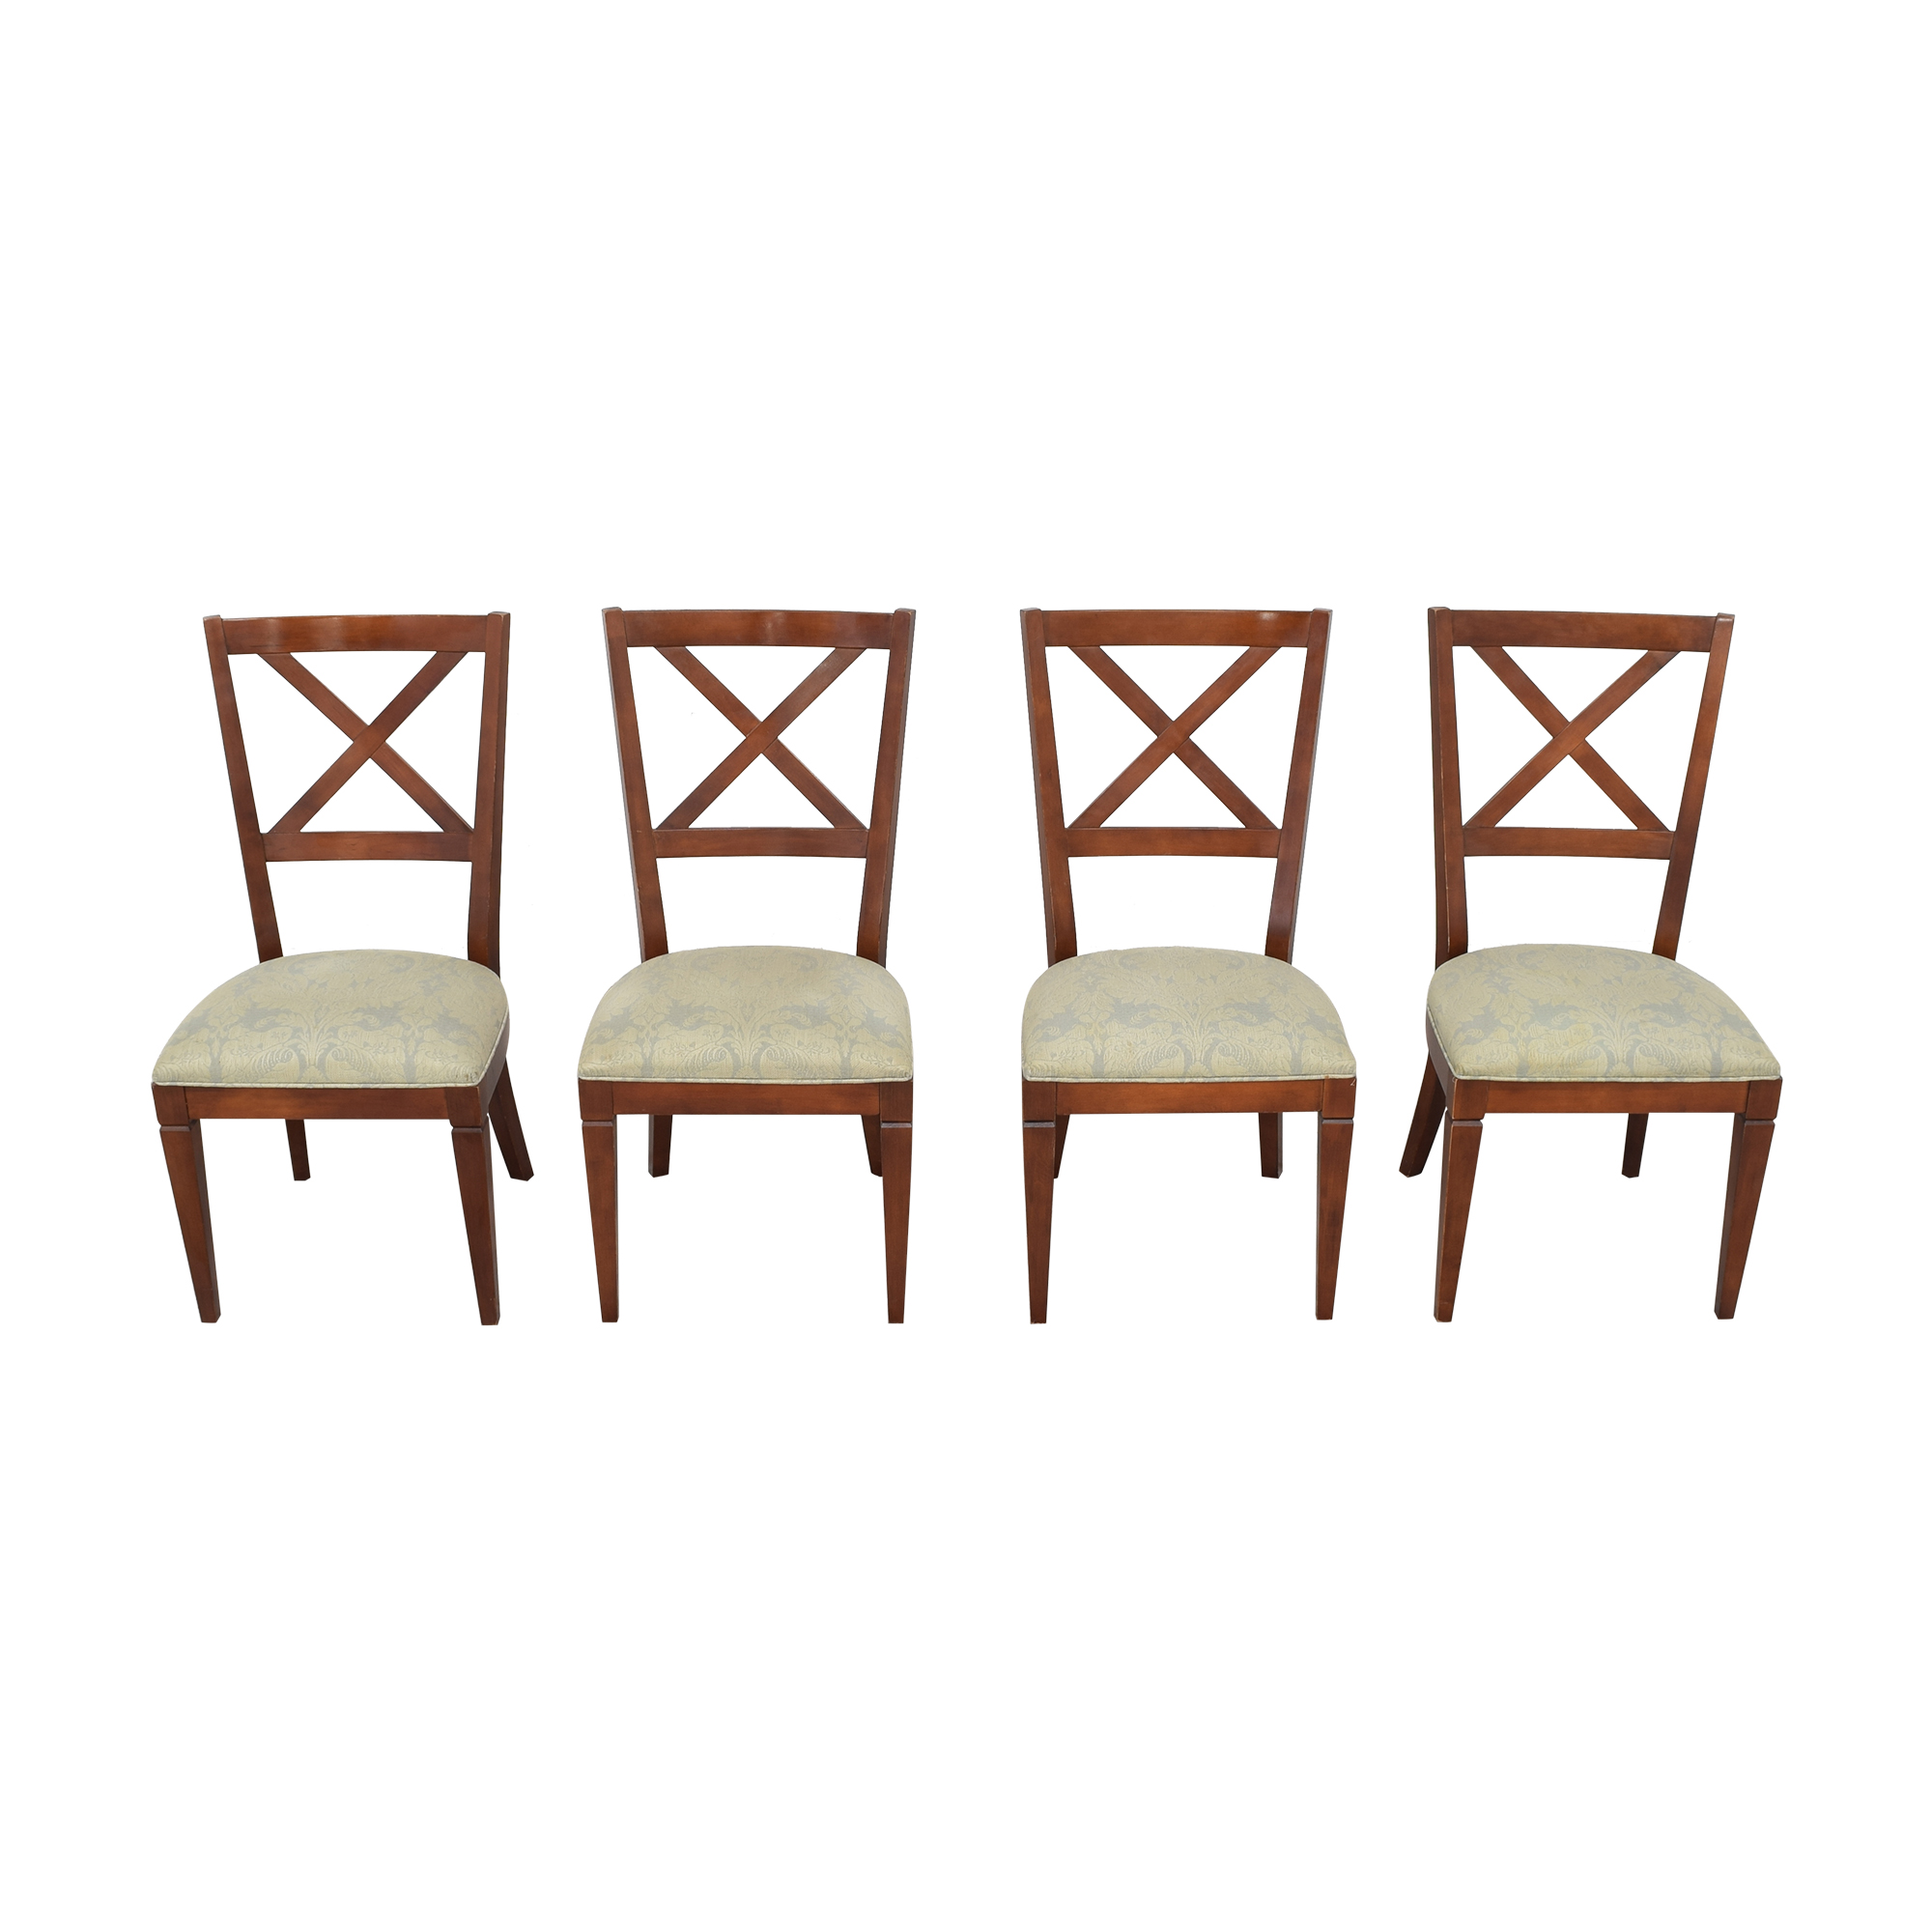 Ethan Allen Dining Chairs sale